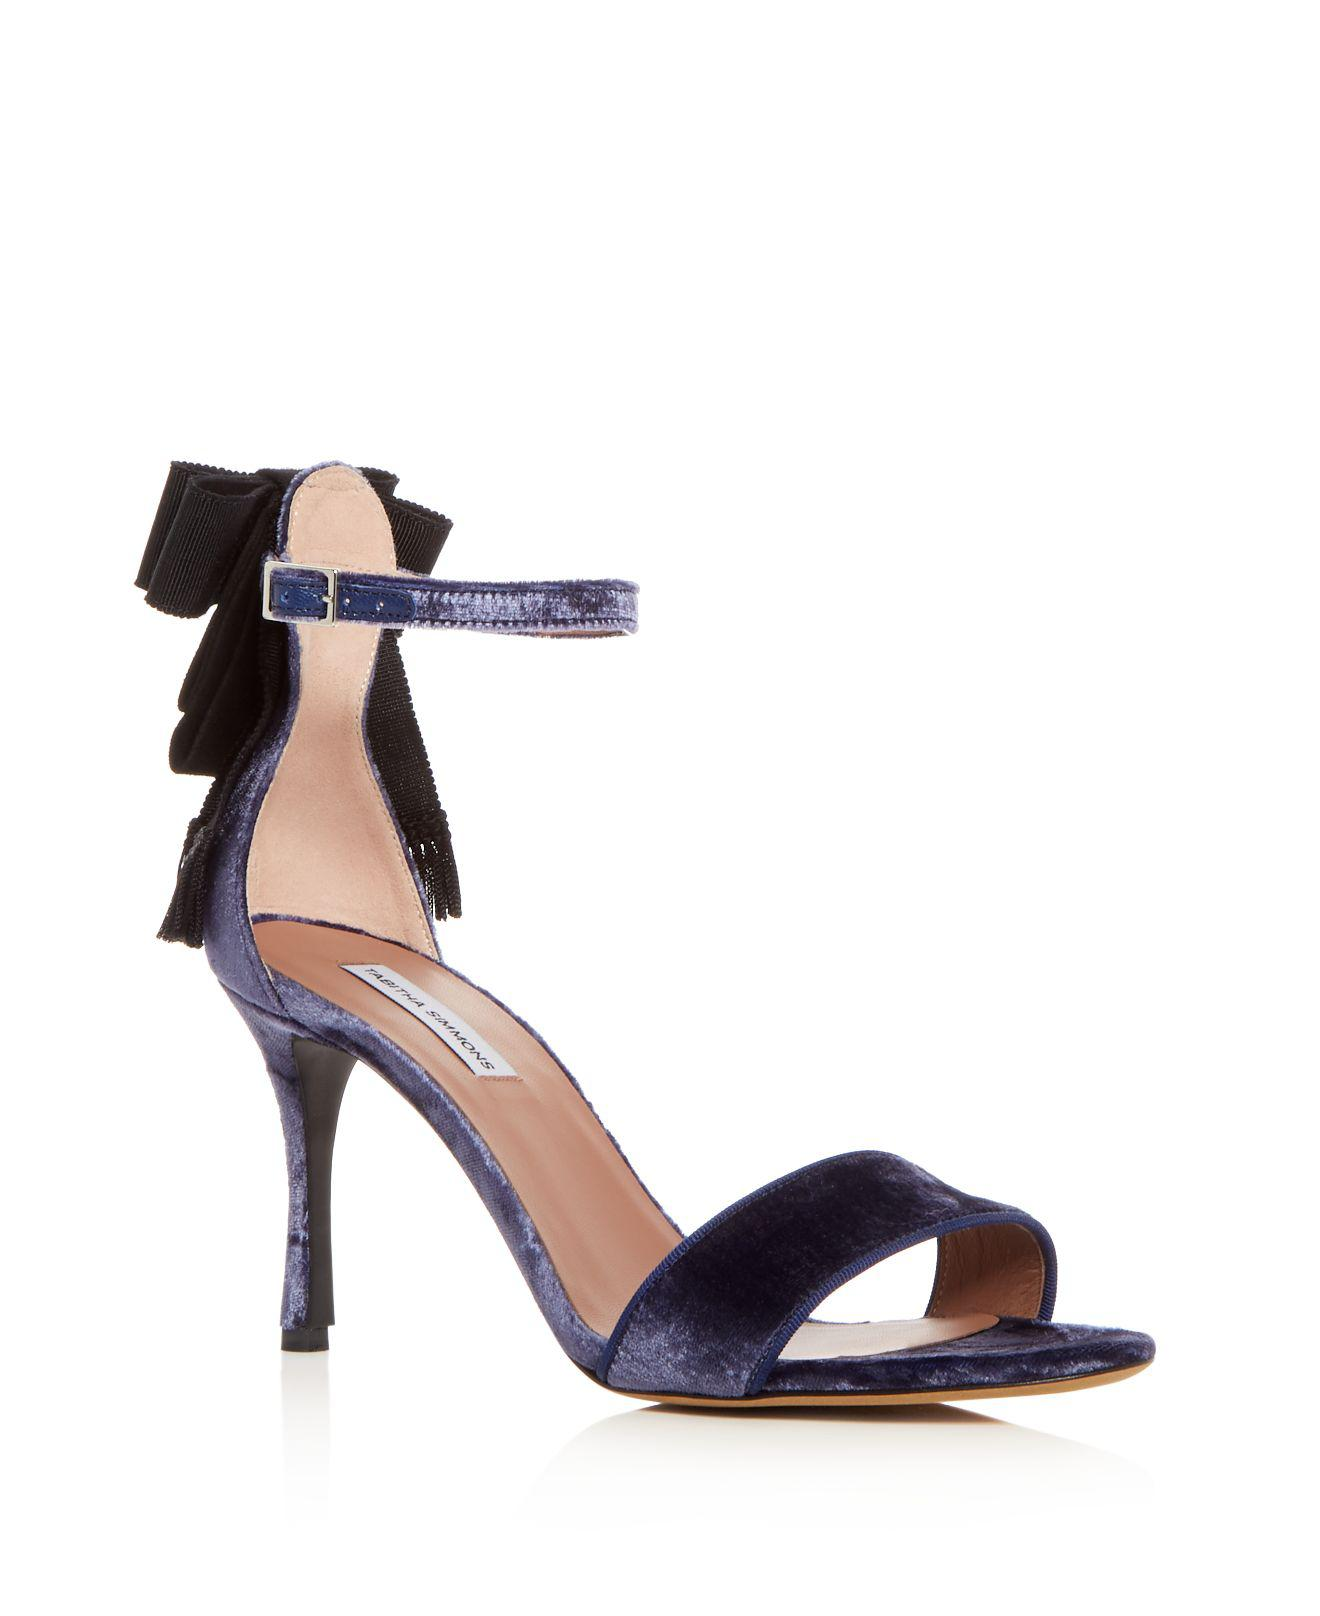 Tabitha Simmons Women's Jodie Velvet Platform Ankle Strap Sandals Sale Low Shipping Cy1oWjs8